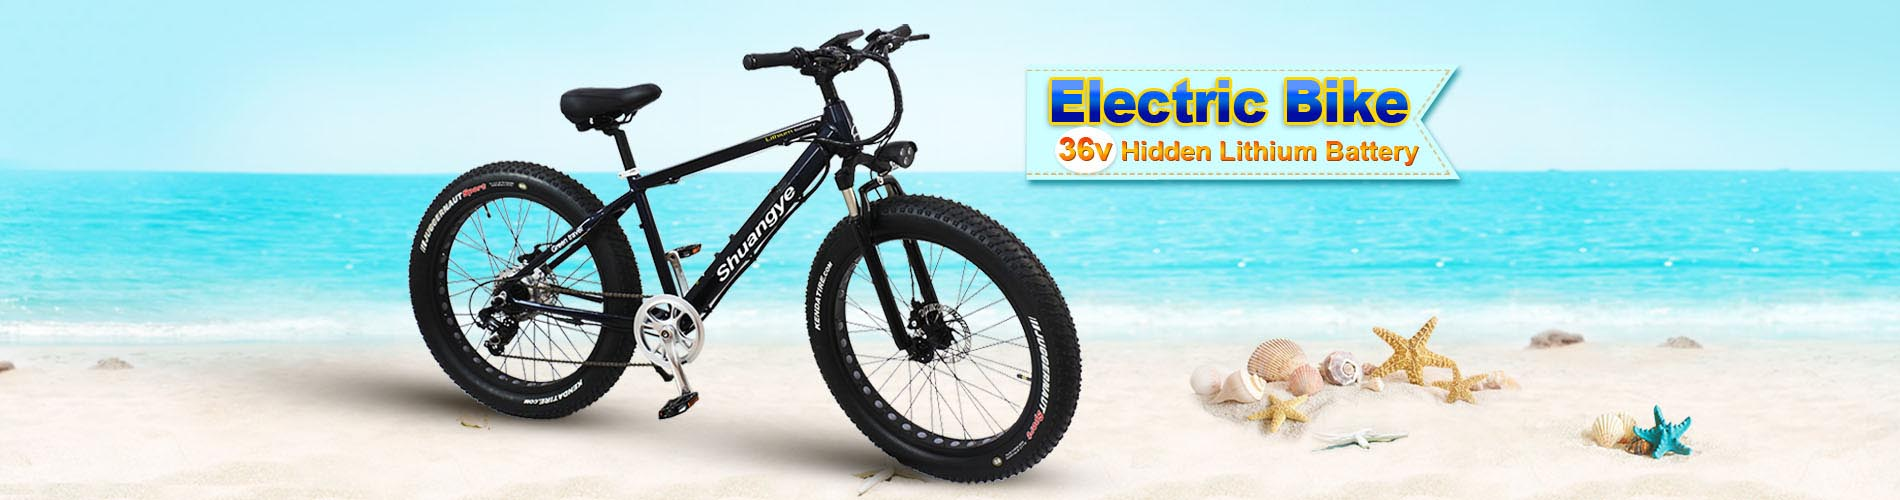 26 inch 36v alloy frame mountain bike electric